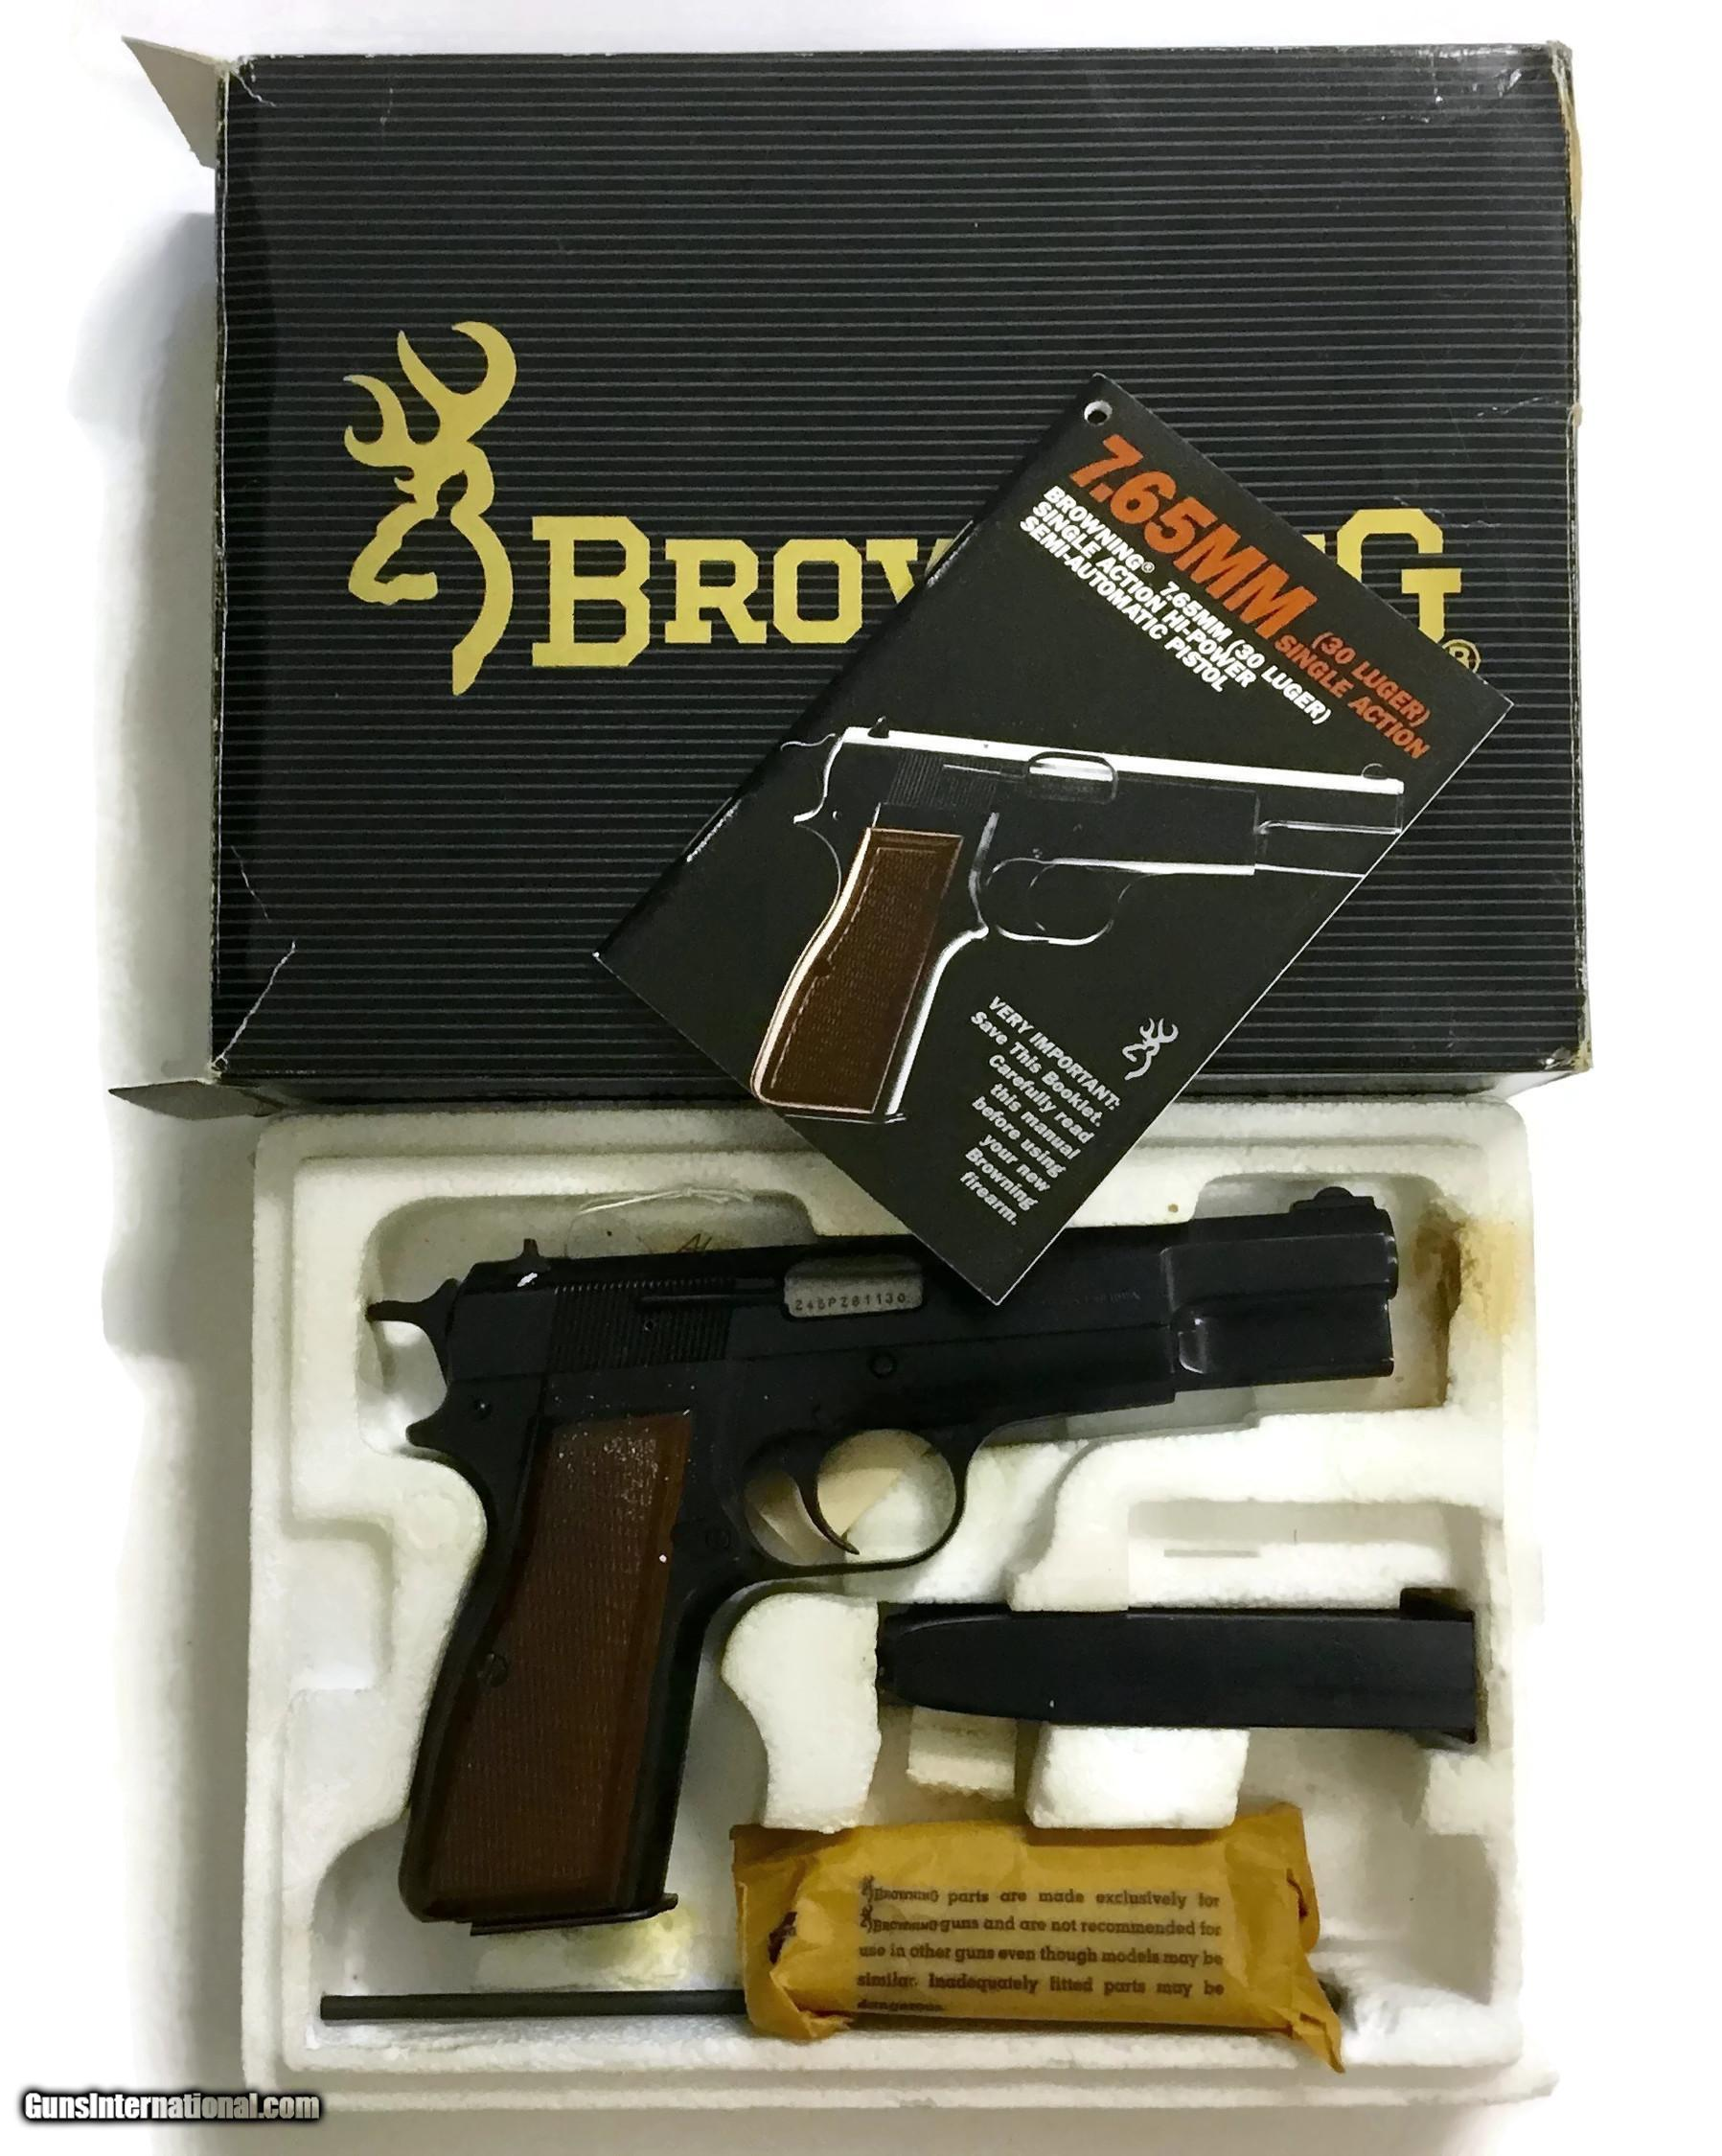 HIGHLY COLLECTIBLE 30 LUGER BROWNING HI-POWER AS NEW IN BOX, NIB